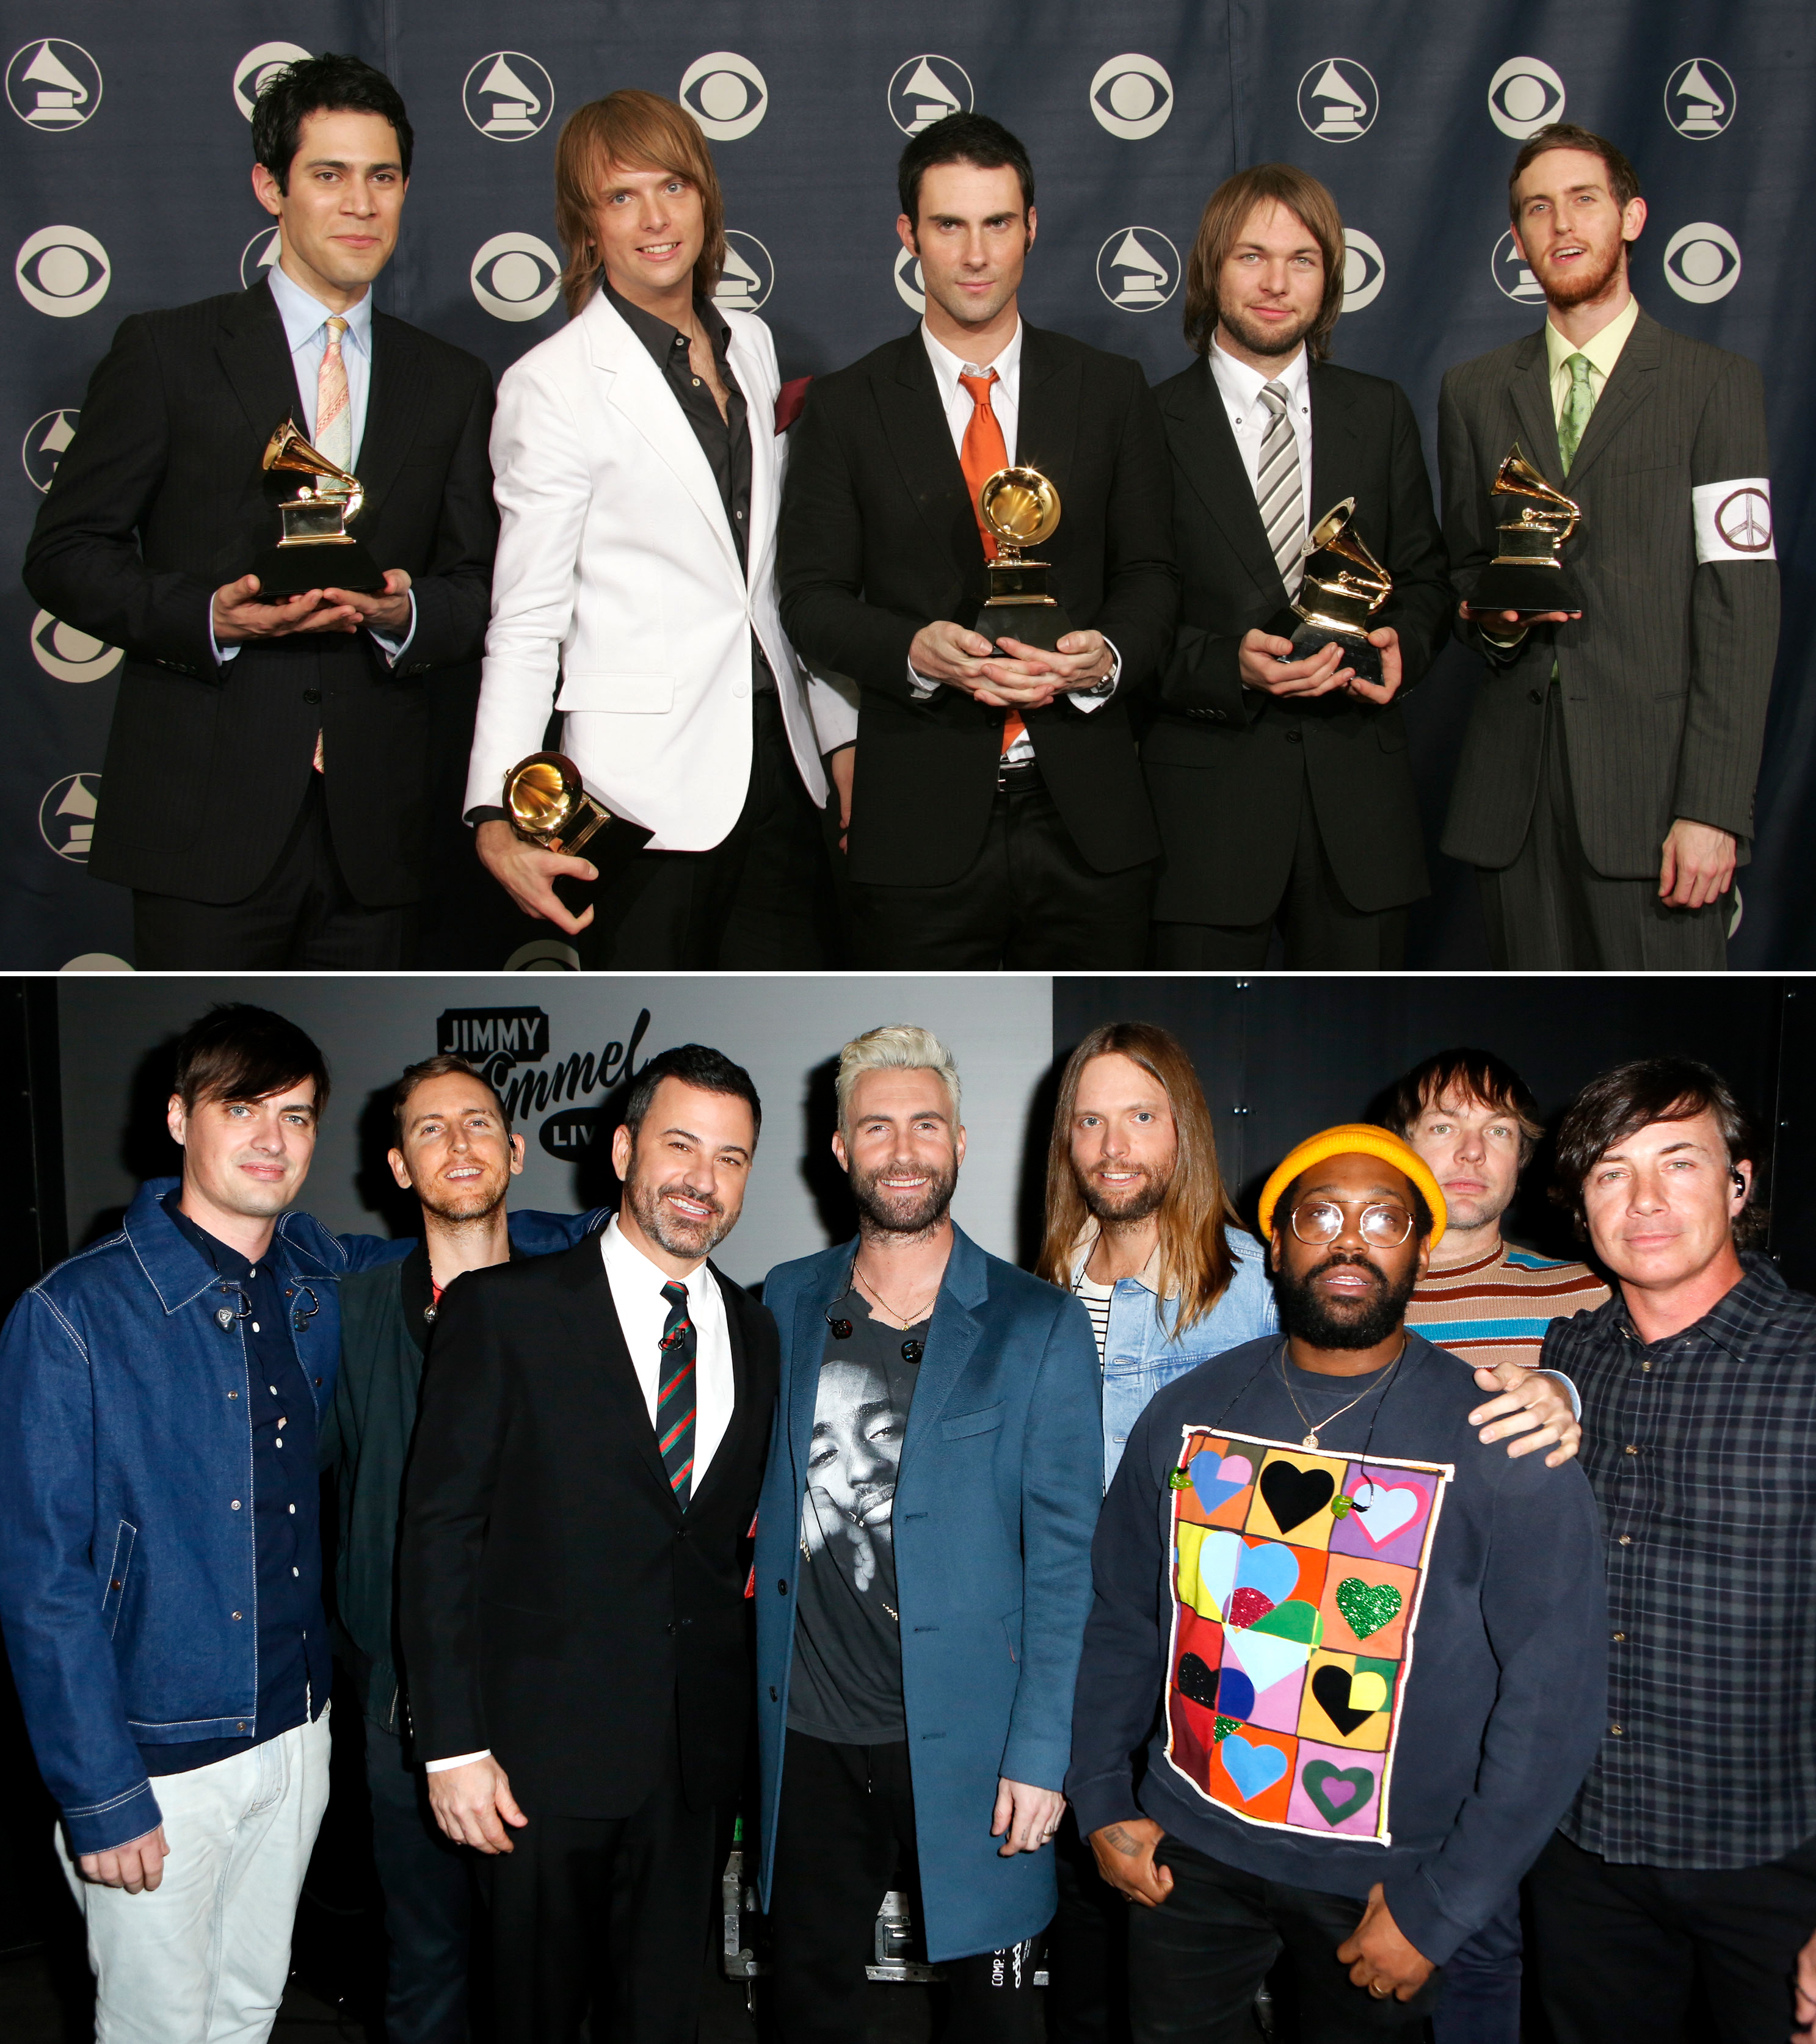 Best New Artist Grammy Winners Where Are They Now - Who They Beat: Los Lonely Boys, Joss Stone, Kanye West, Gretchen Wilson Where Are They Now: After drummer Ryan Dusick left the band in 2006, Matt Flynn replaced him. Jesse Carmichael also took a hiatus from the group in 2012, but rejoined in 2014.